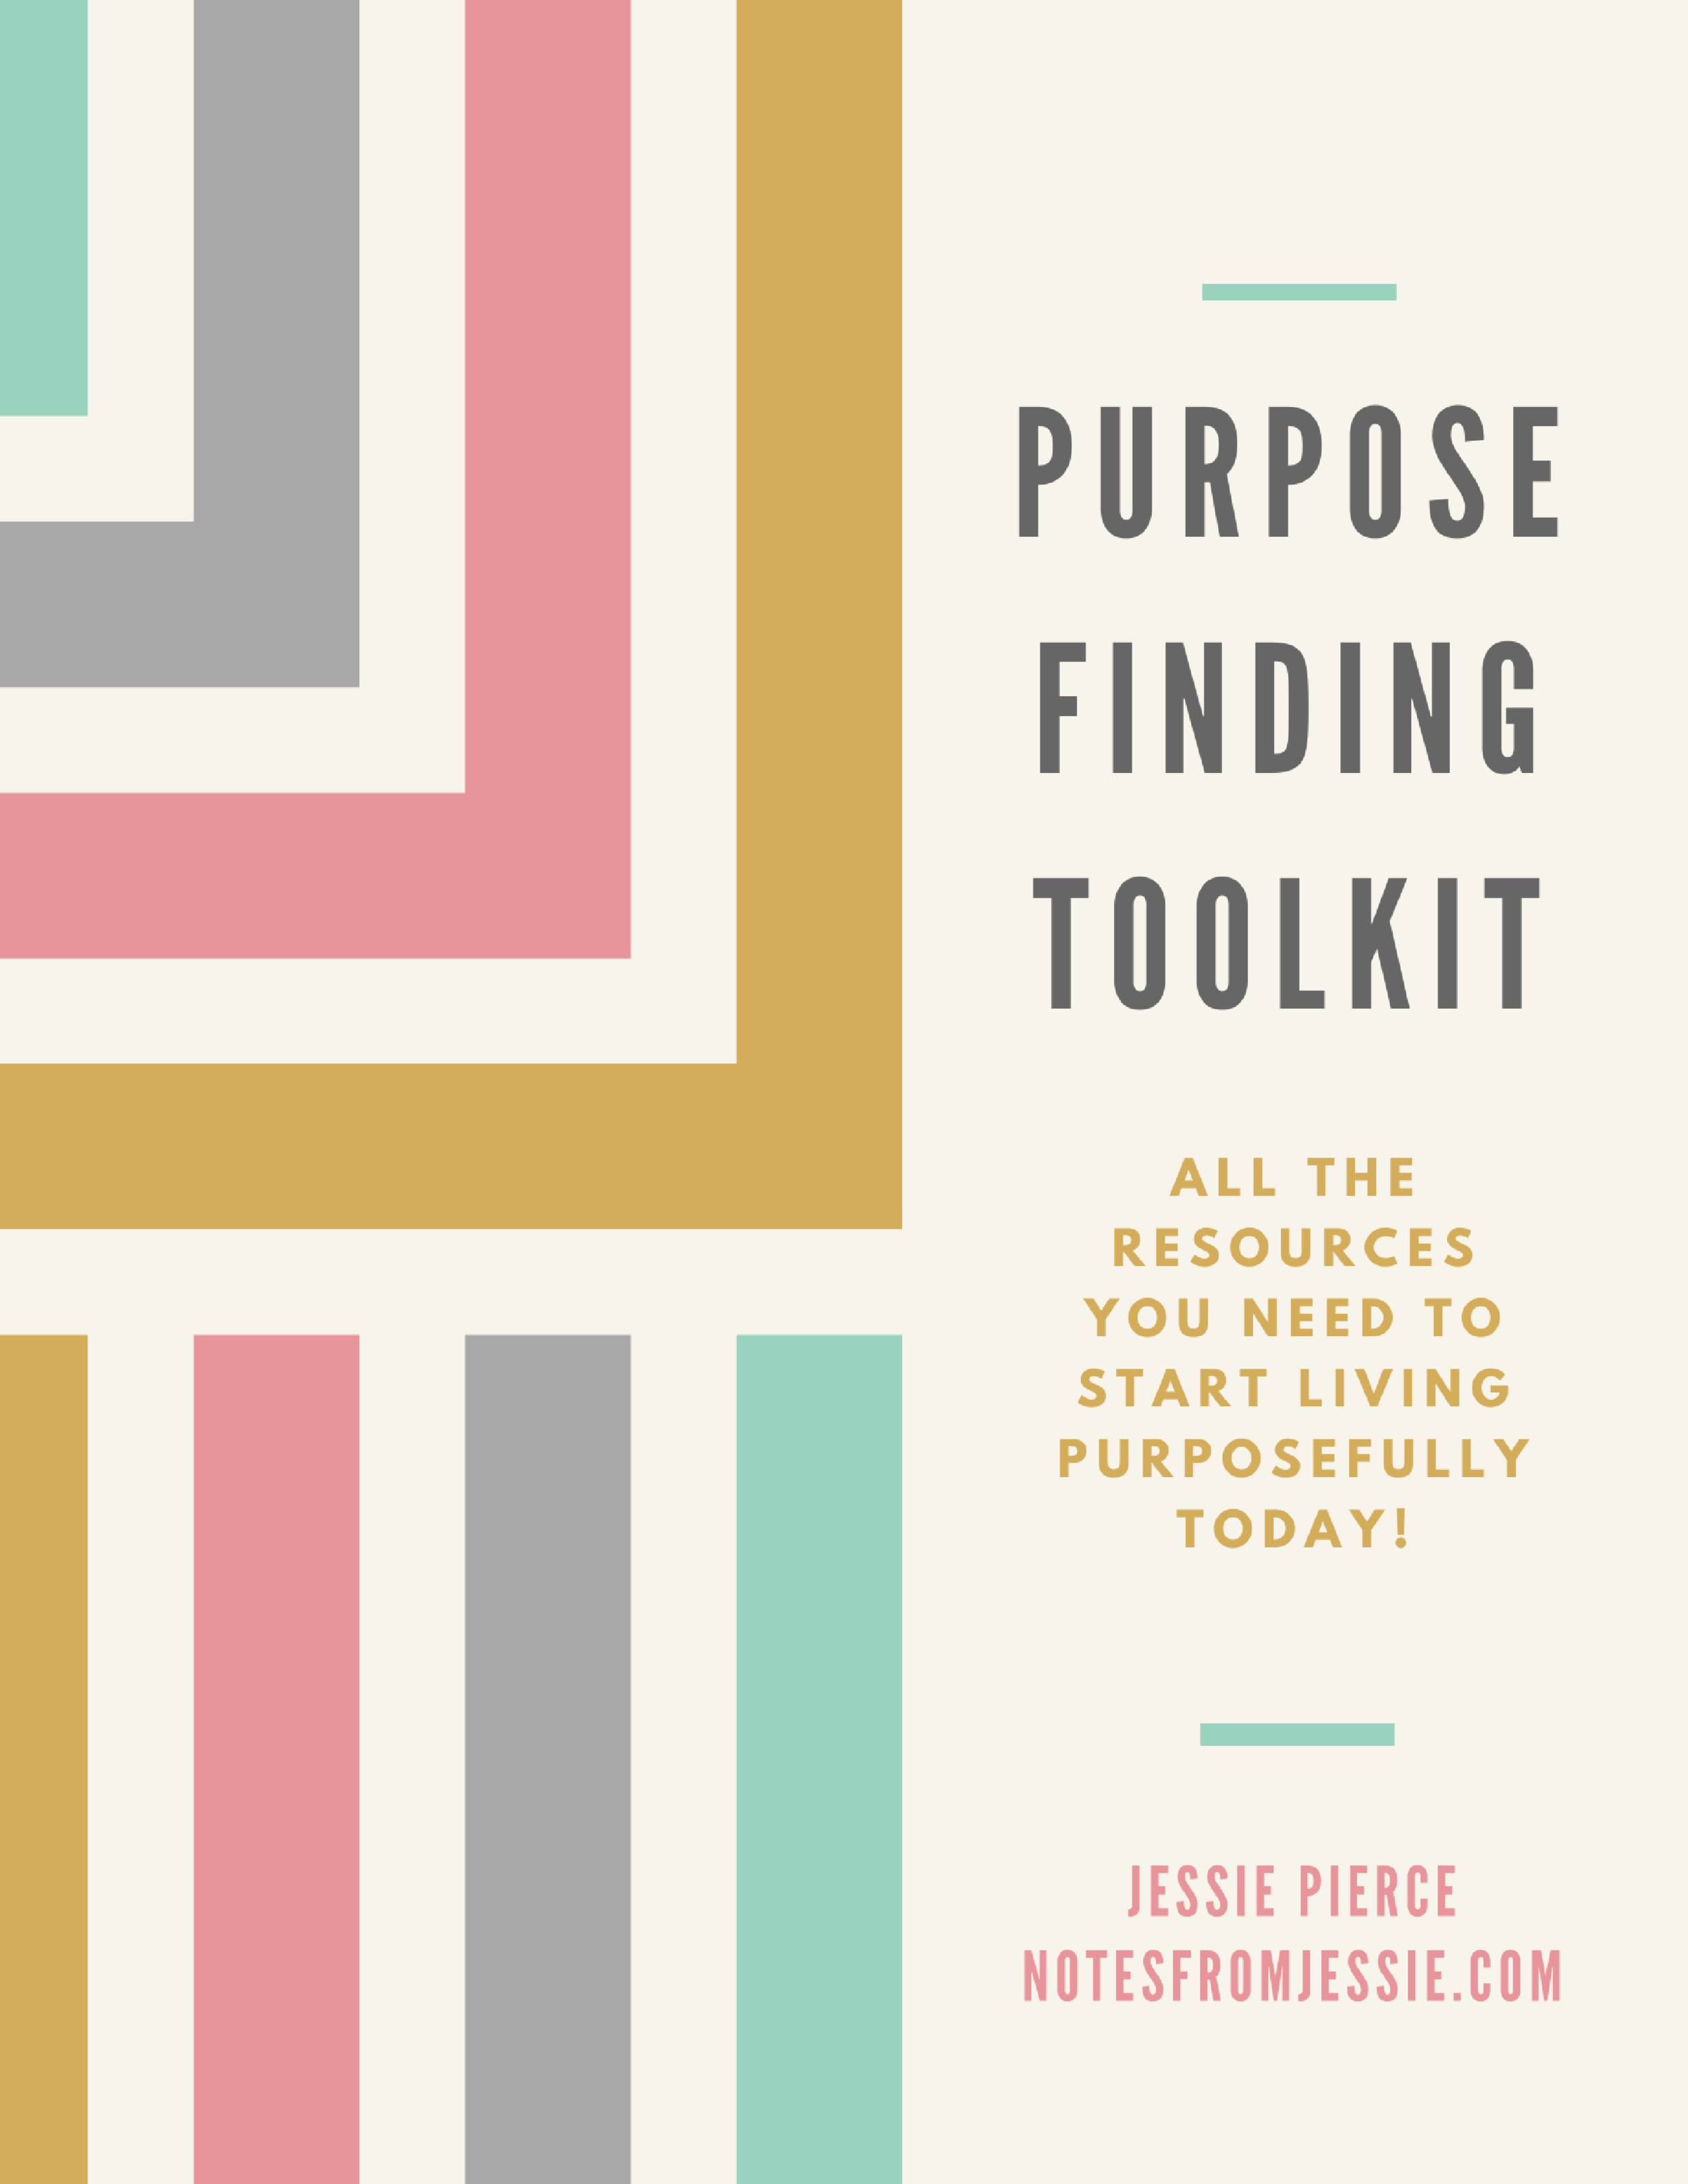 Congratulations on taking a step toward living your purposeful life! - Download your copy of the toolkit to get started!